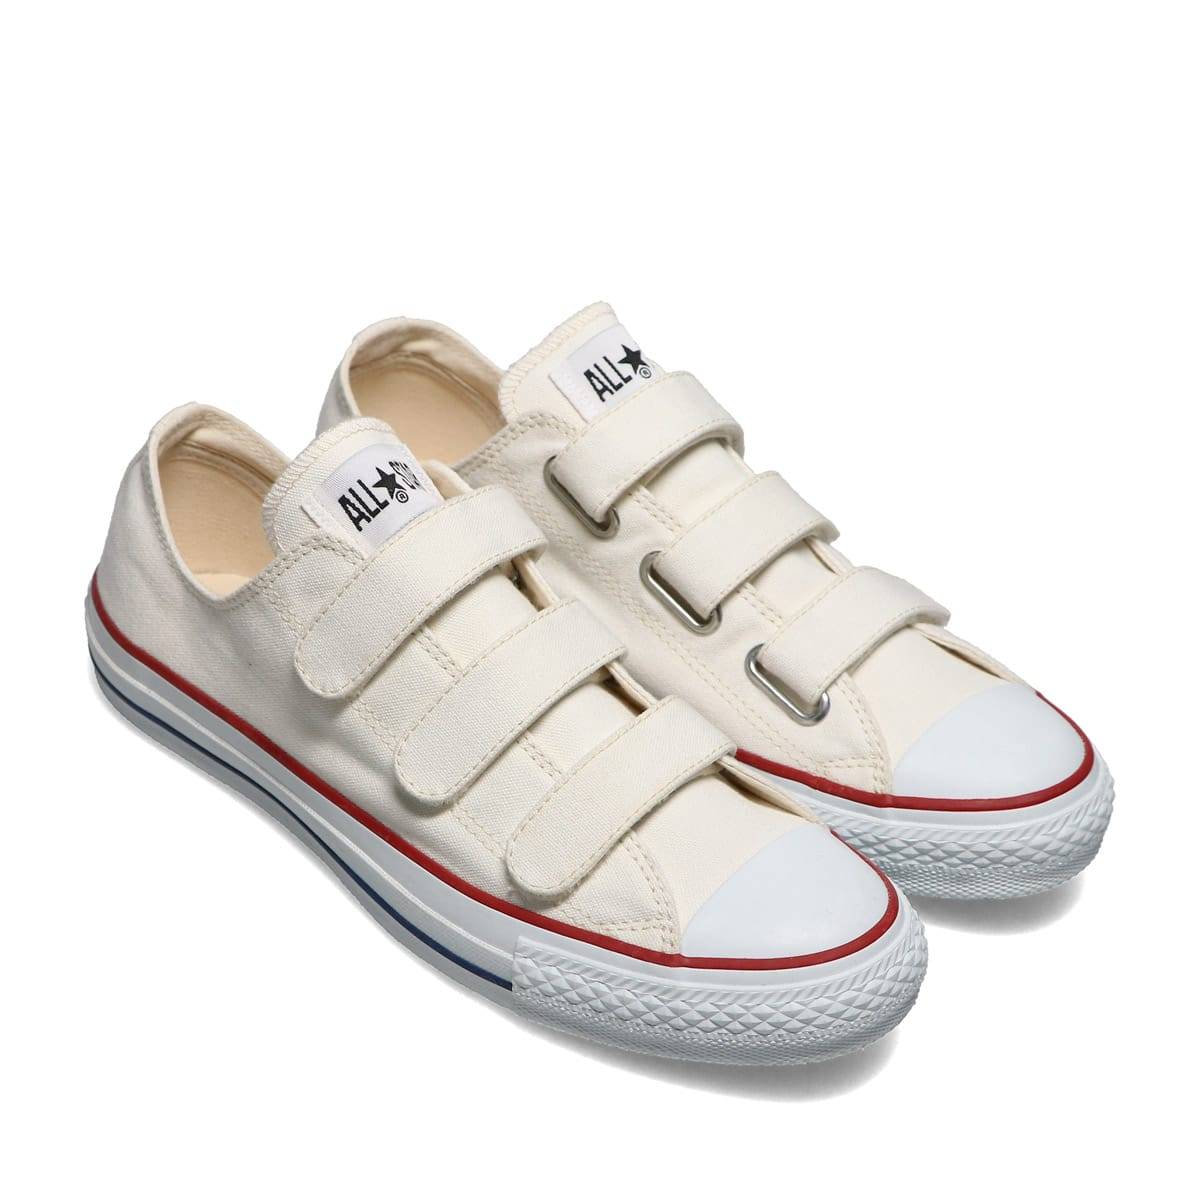 CONVERSE ALL STAR V-3 OX WHITE 21FW-I_photo_large